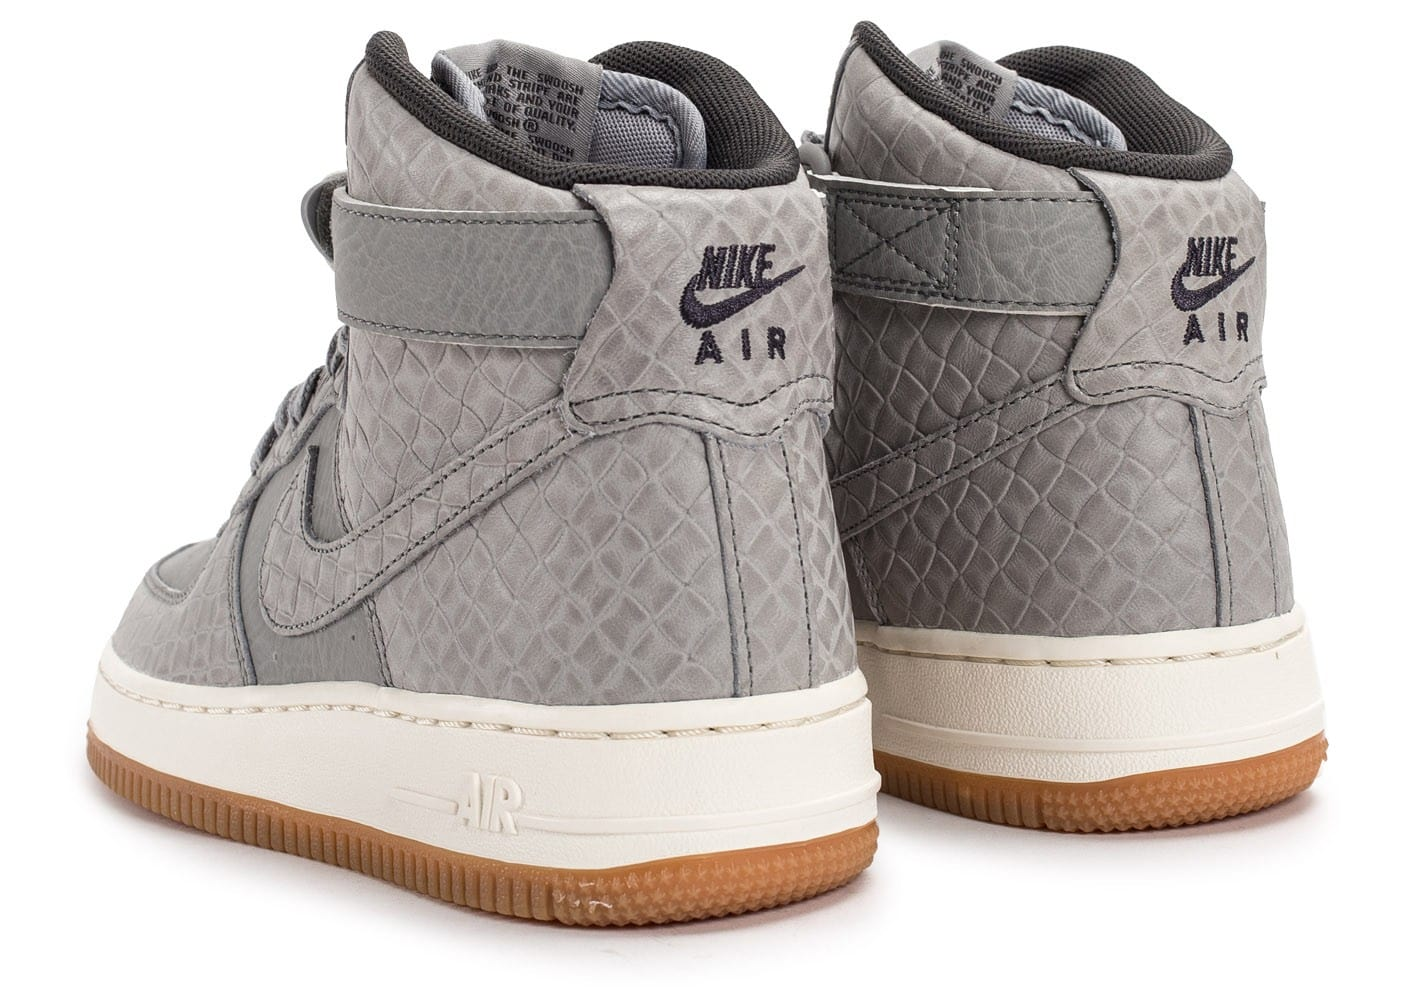 nike air force 1 hi premium grise chaussures femme chausport. Black Bedroom Furniture Sets. Home Design Ideas